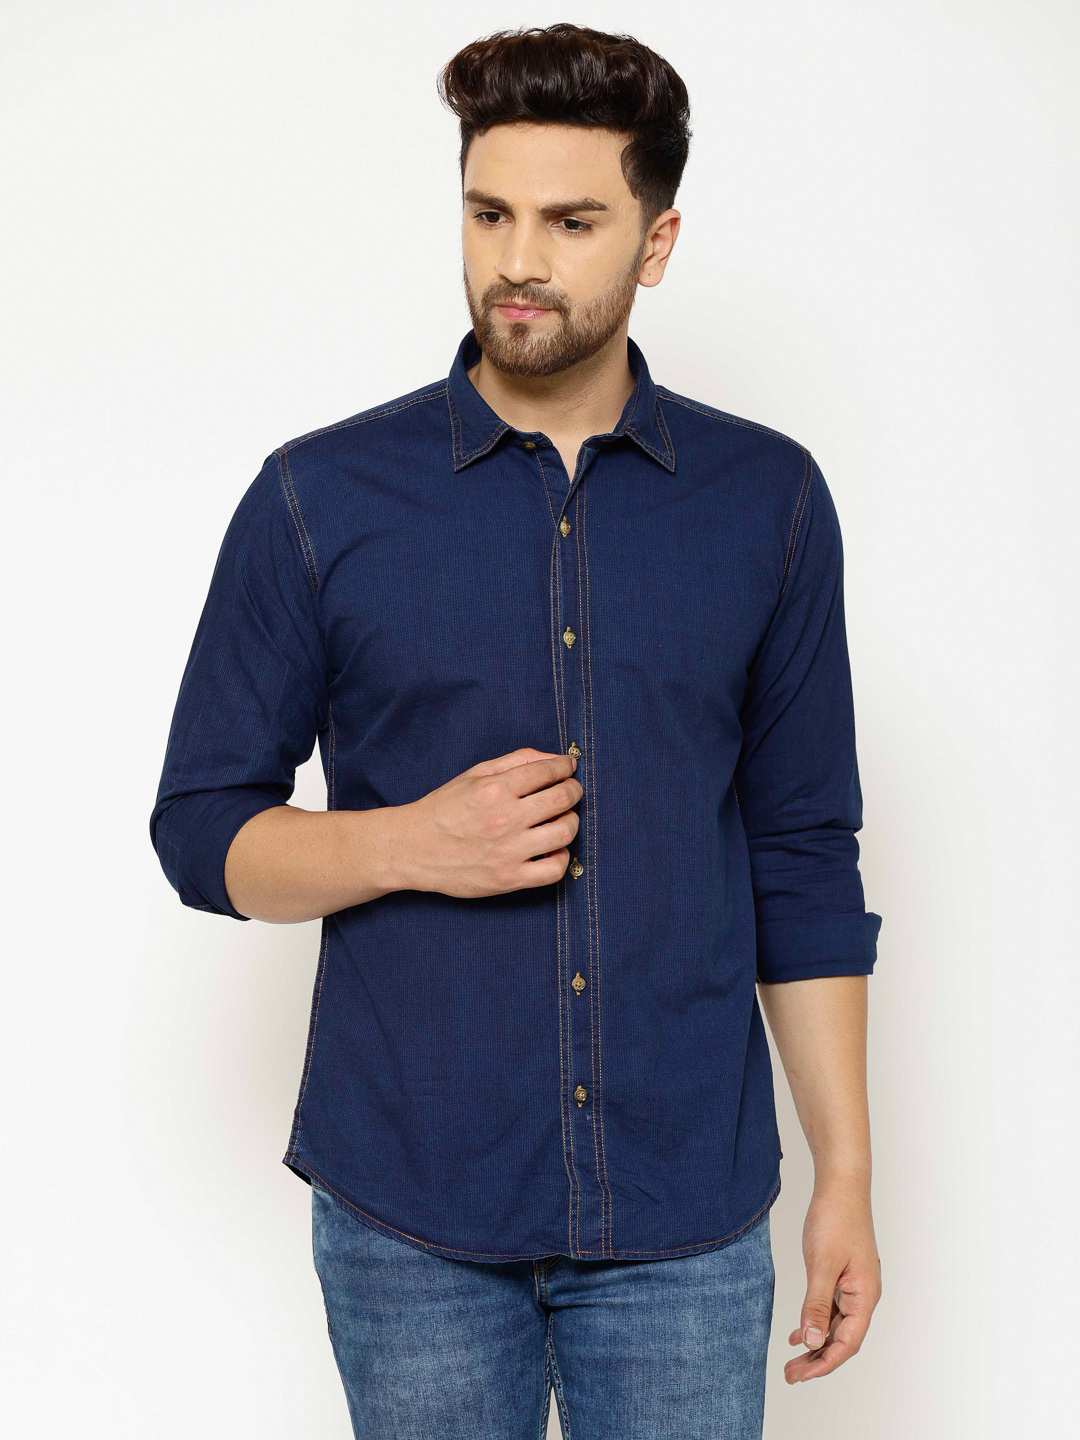 Eppe | EPPE Men's Solid Smart Fit Full Sleeves Casual Denim Shirt